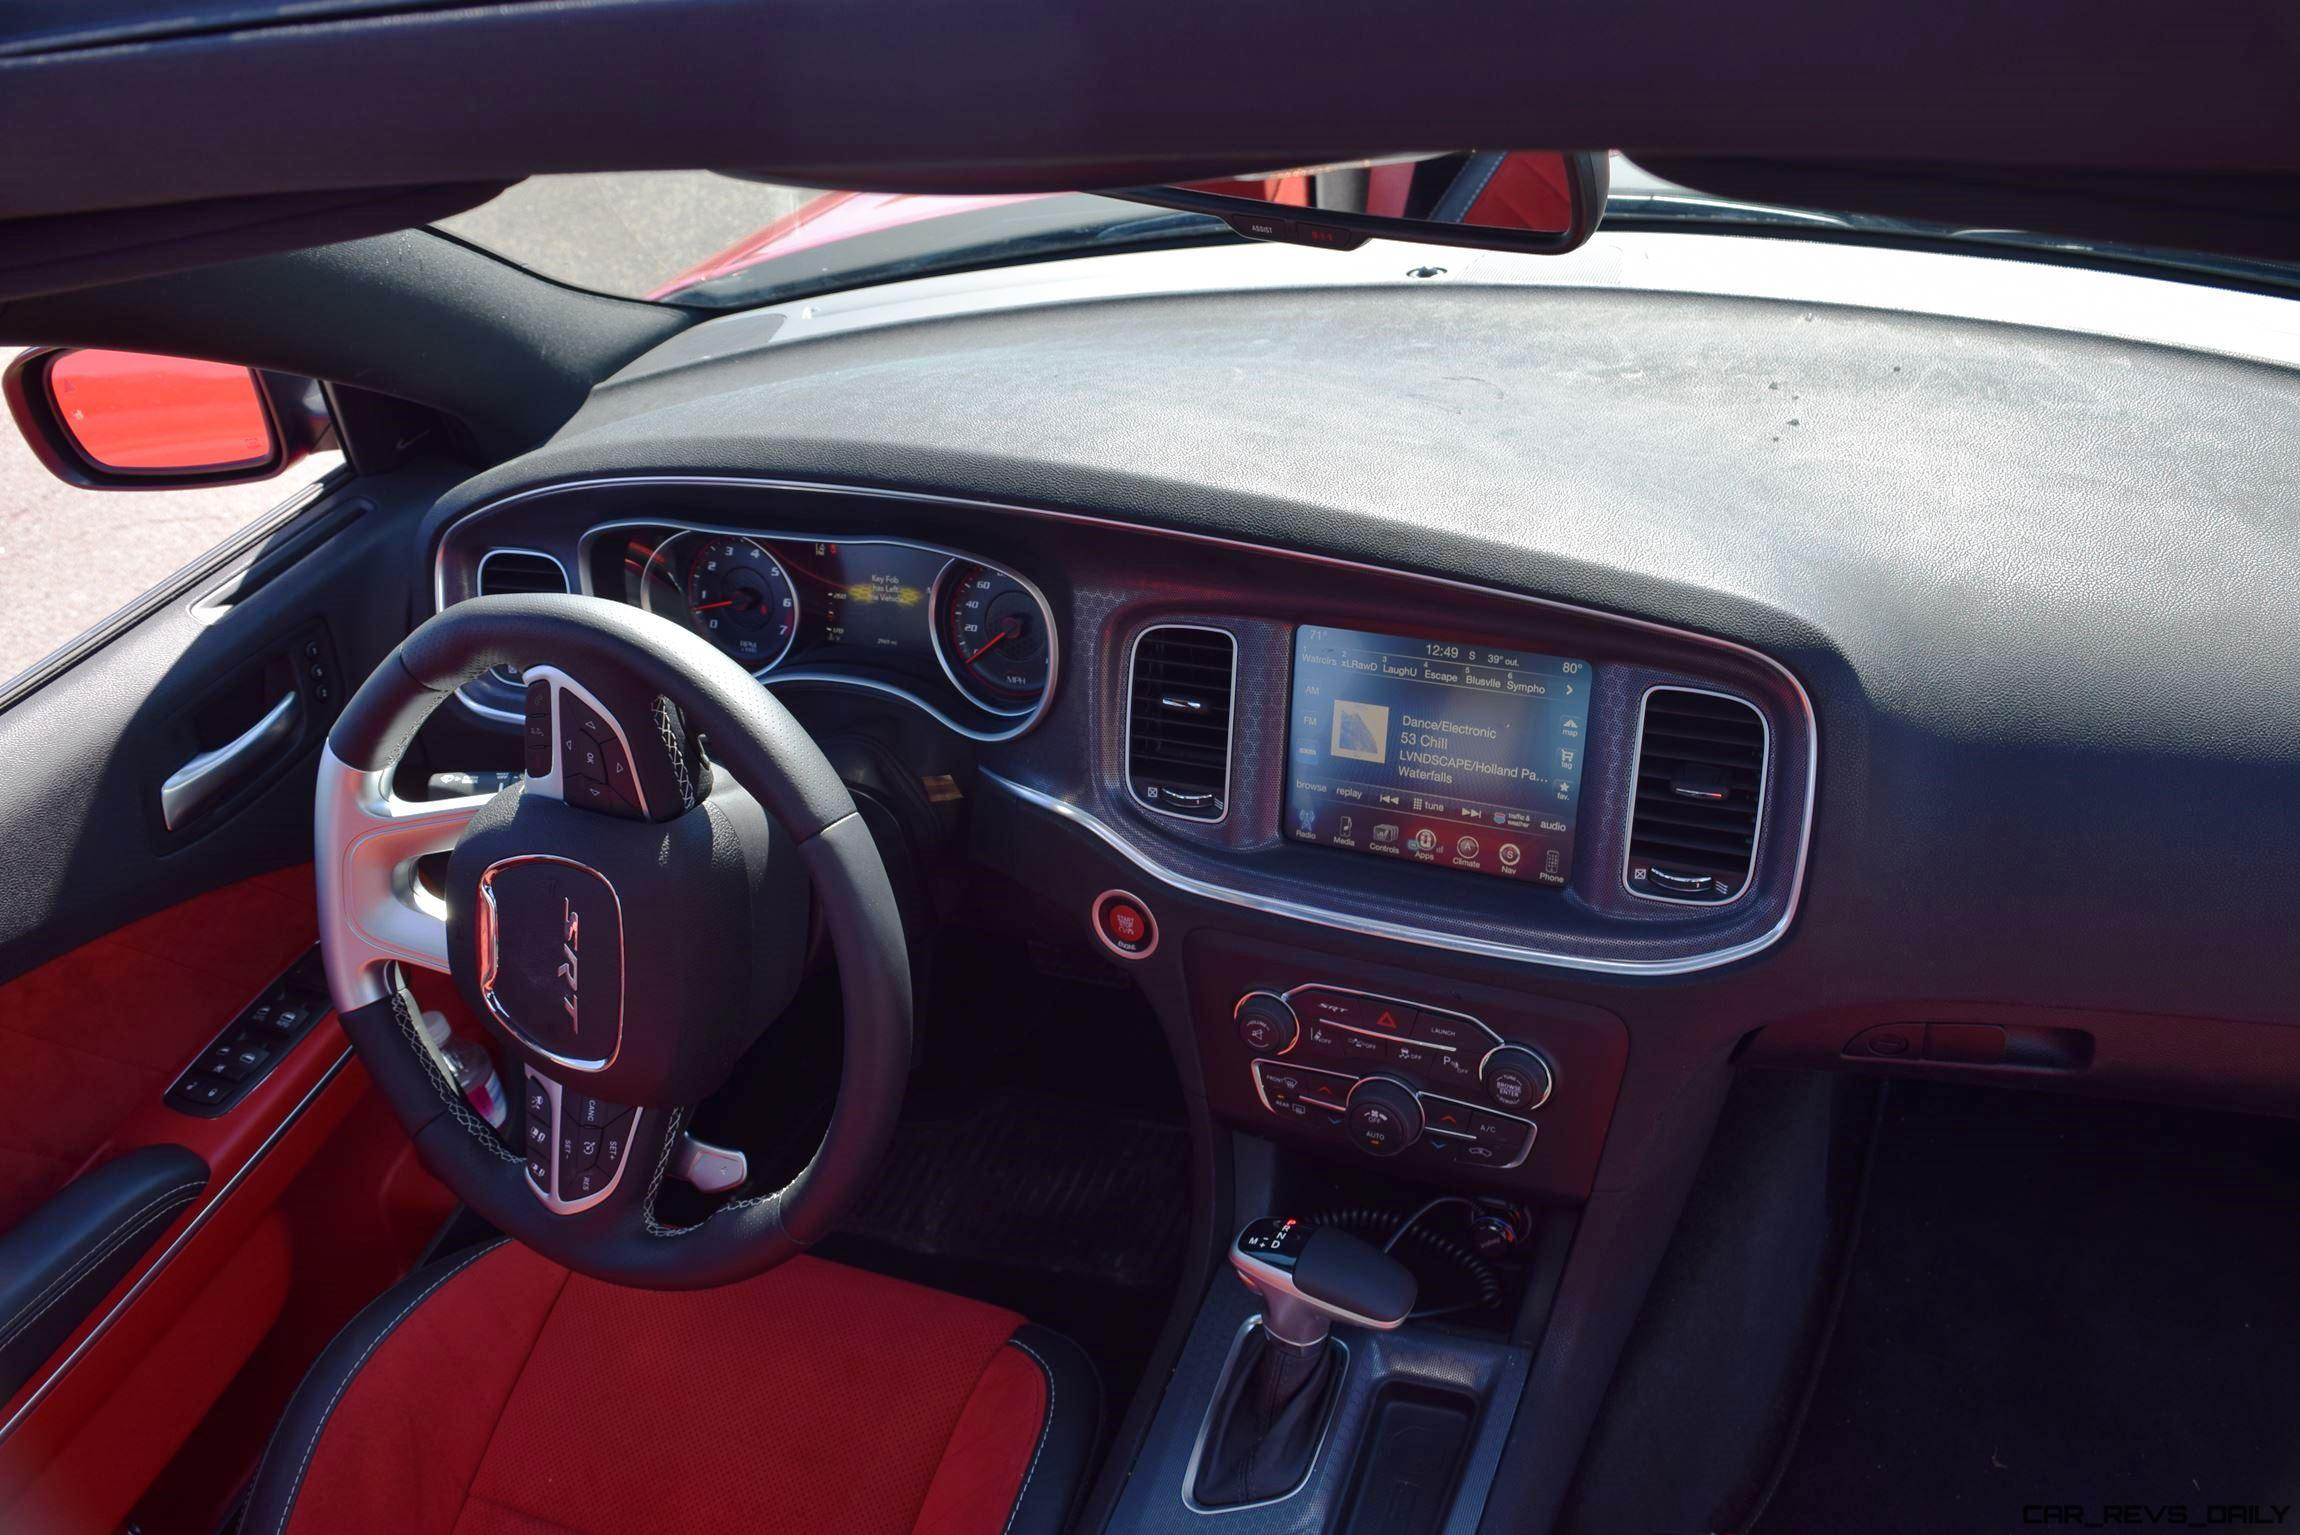 2016 dodge charger srt392 interior 11 - 2017 dodge charger interior accessories ...